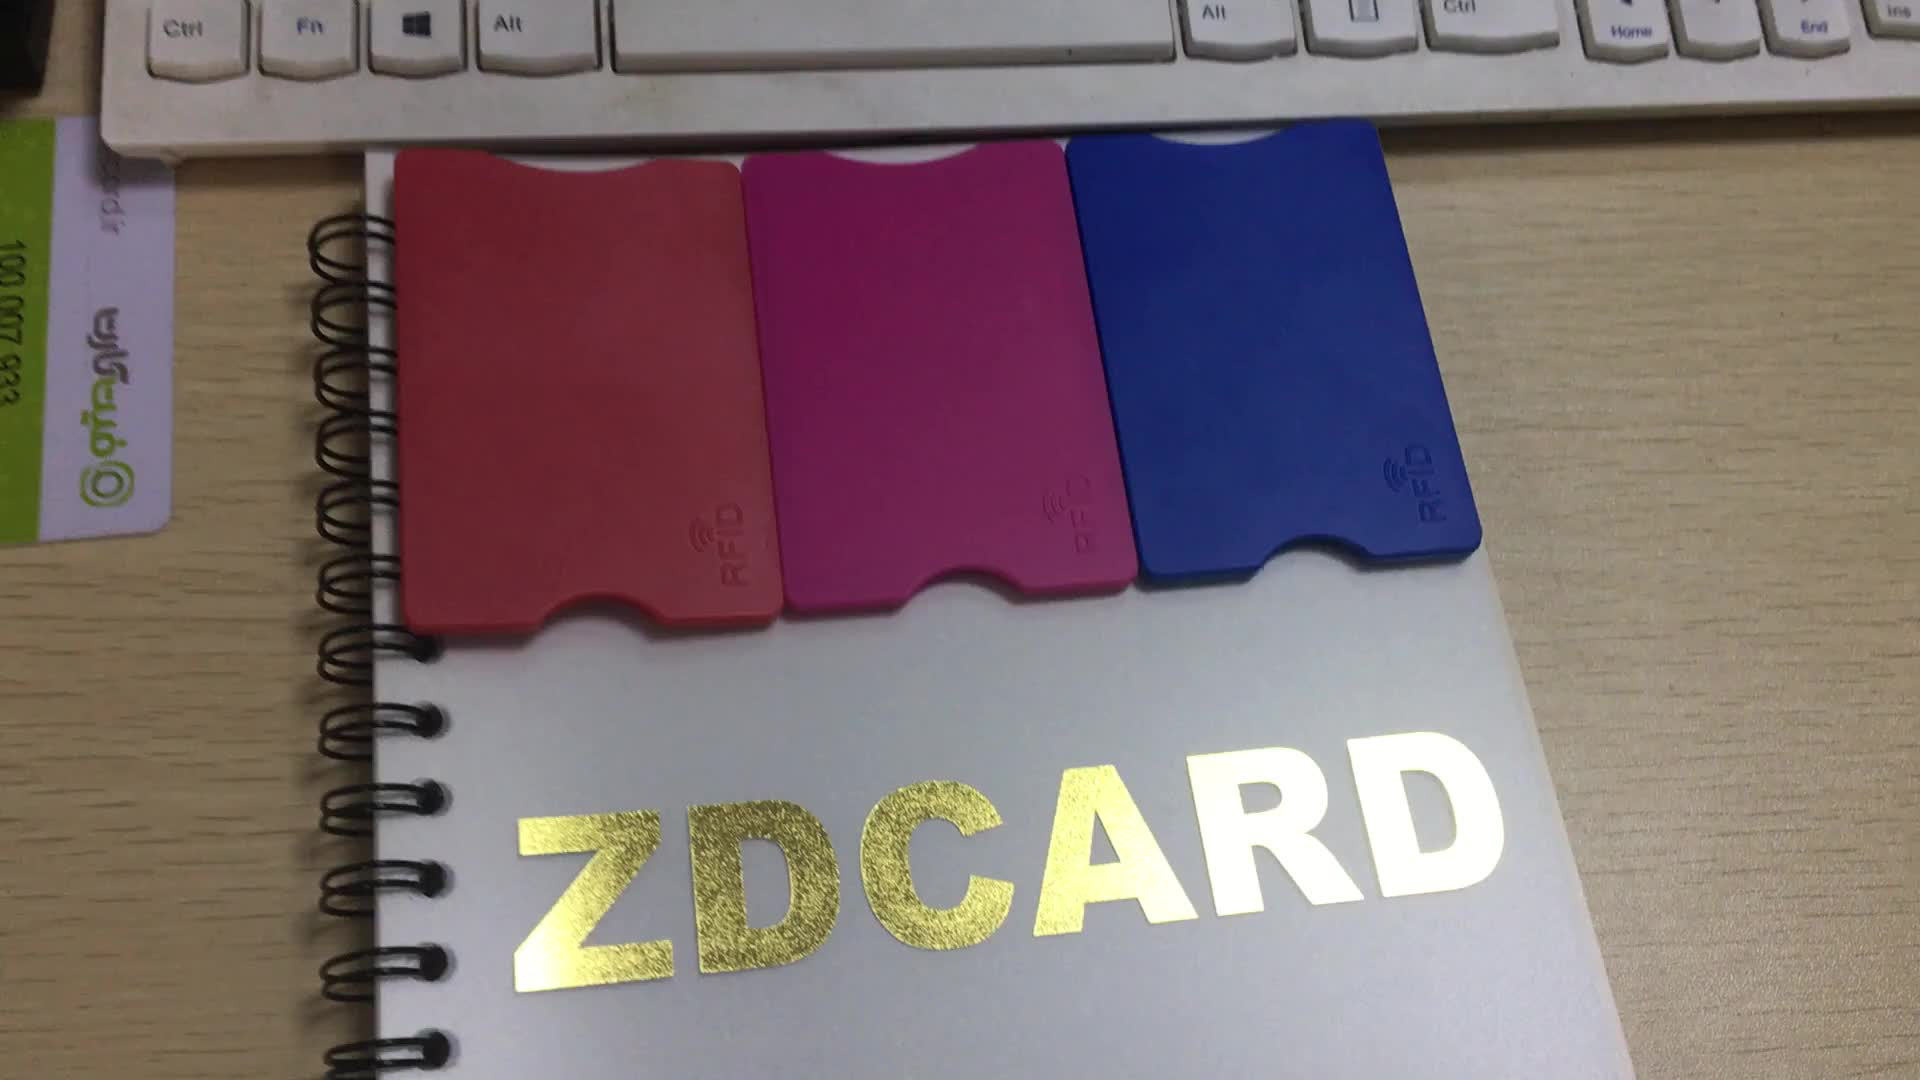 Plastic ABS RFID blocking credit card size holder with Aluminum foil